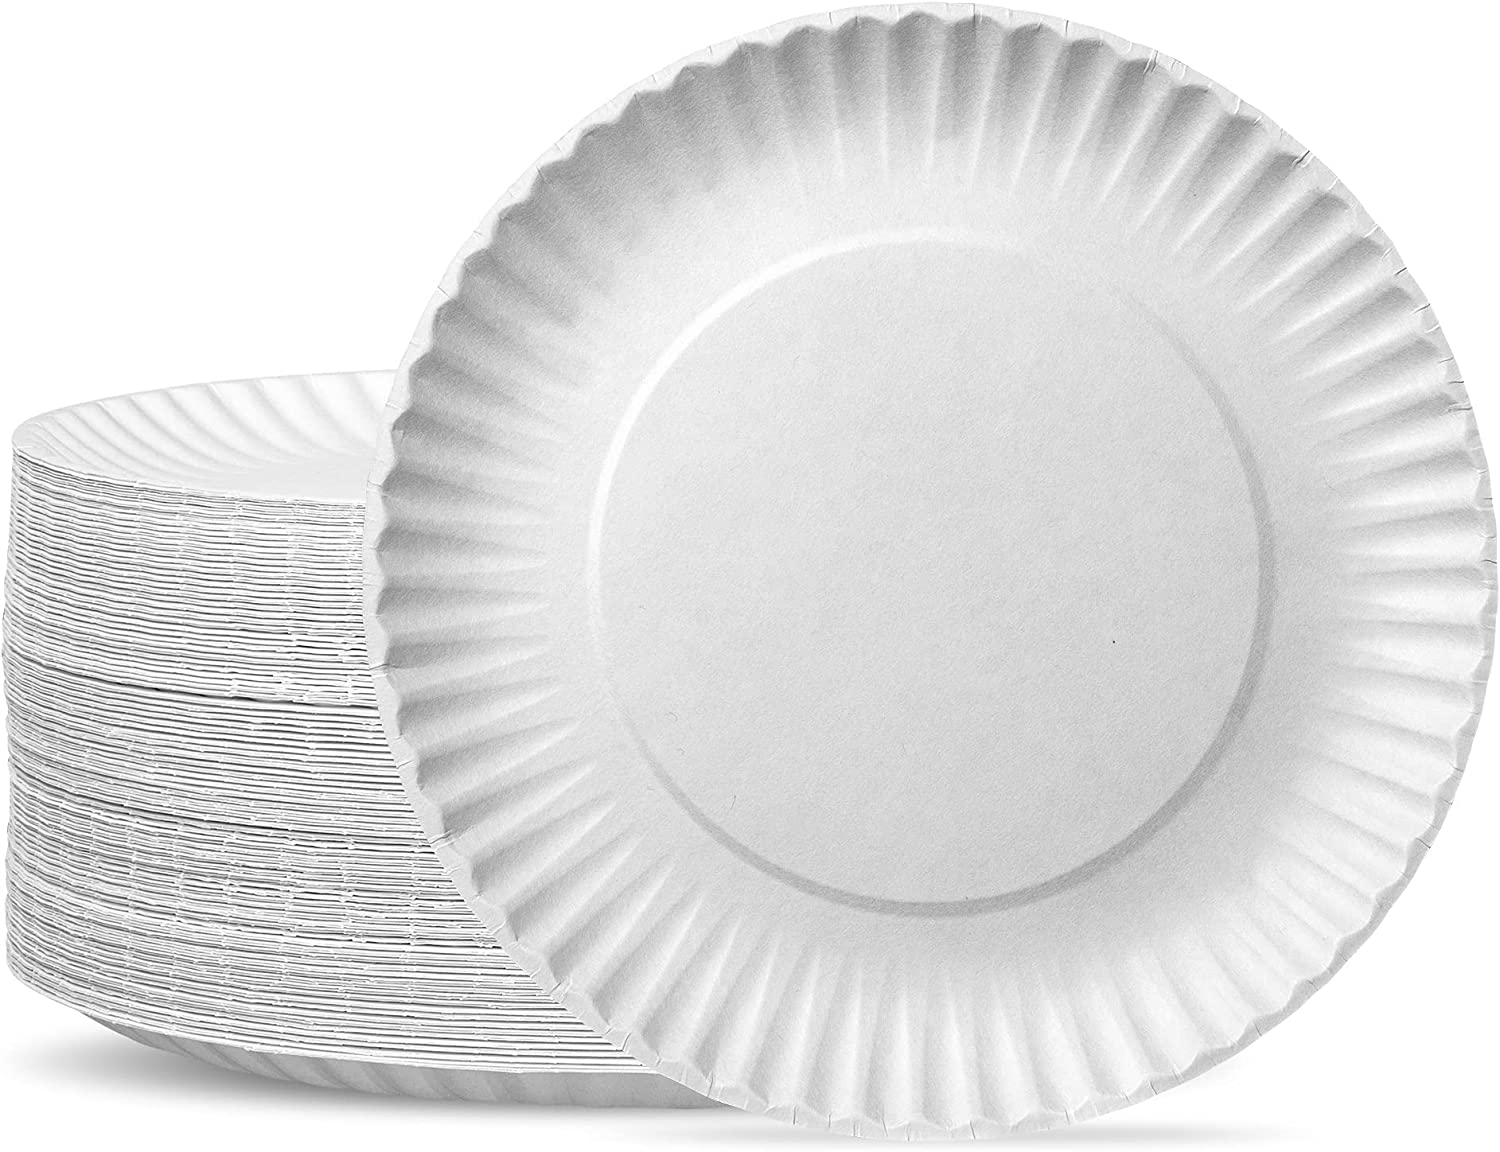 Amazon.com: [300 Pack] Bulk Disposable White Uncoated Paper Plates, 9 Inch  Large : Health & Household